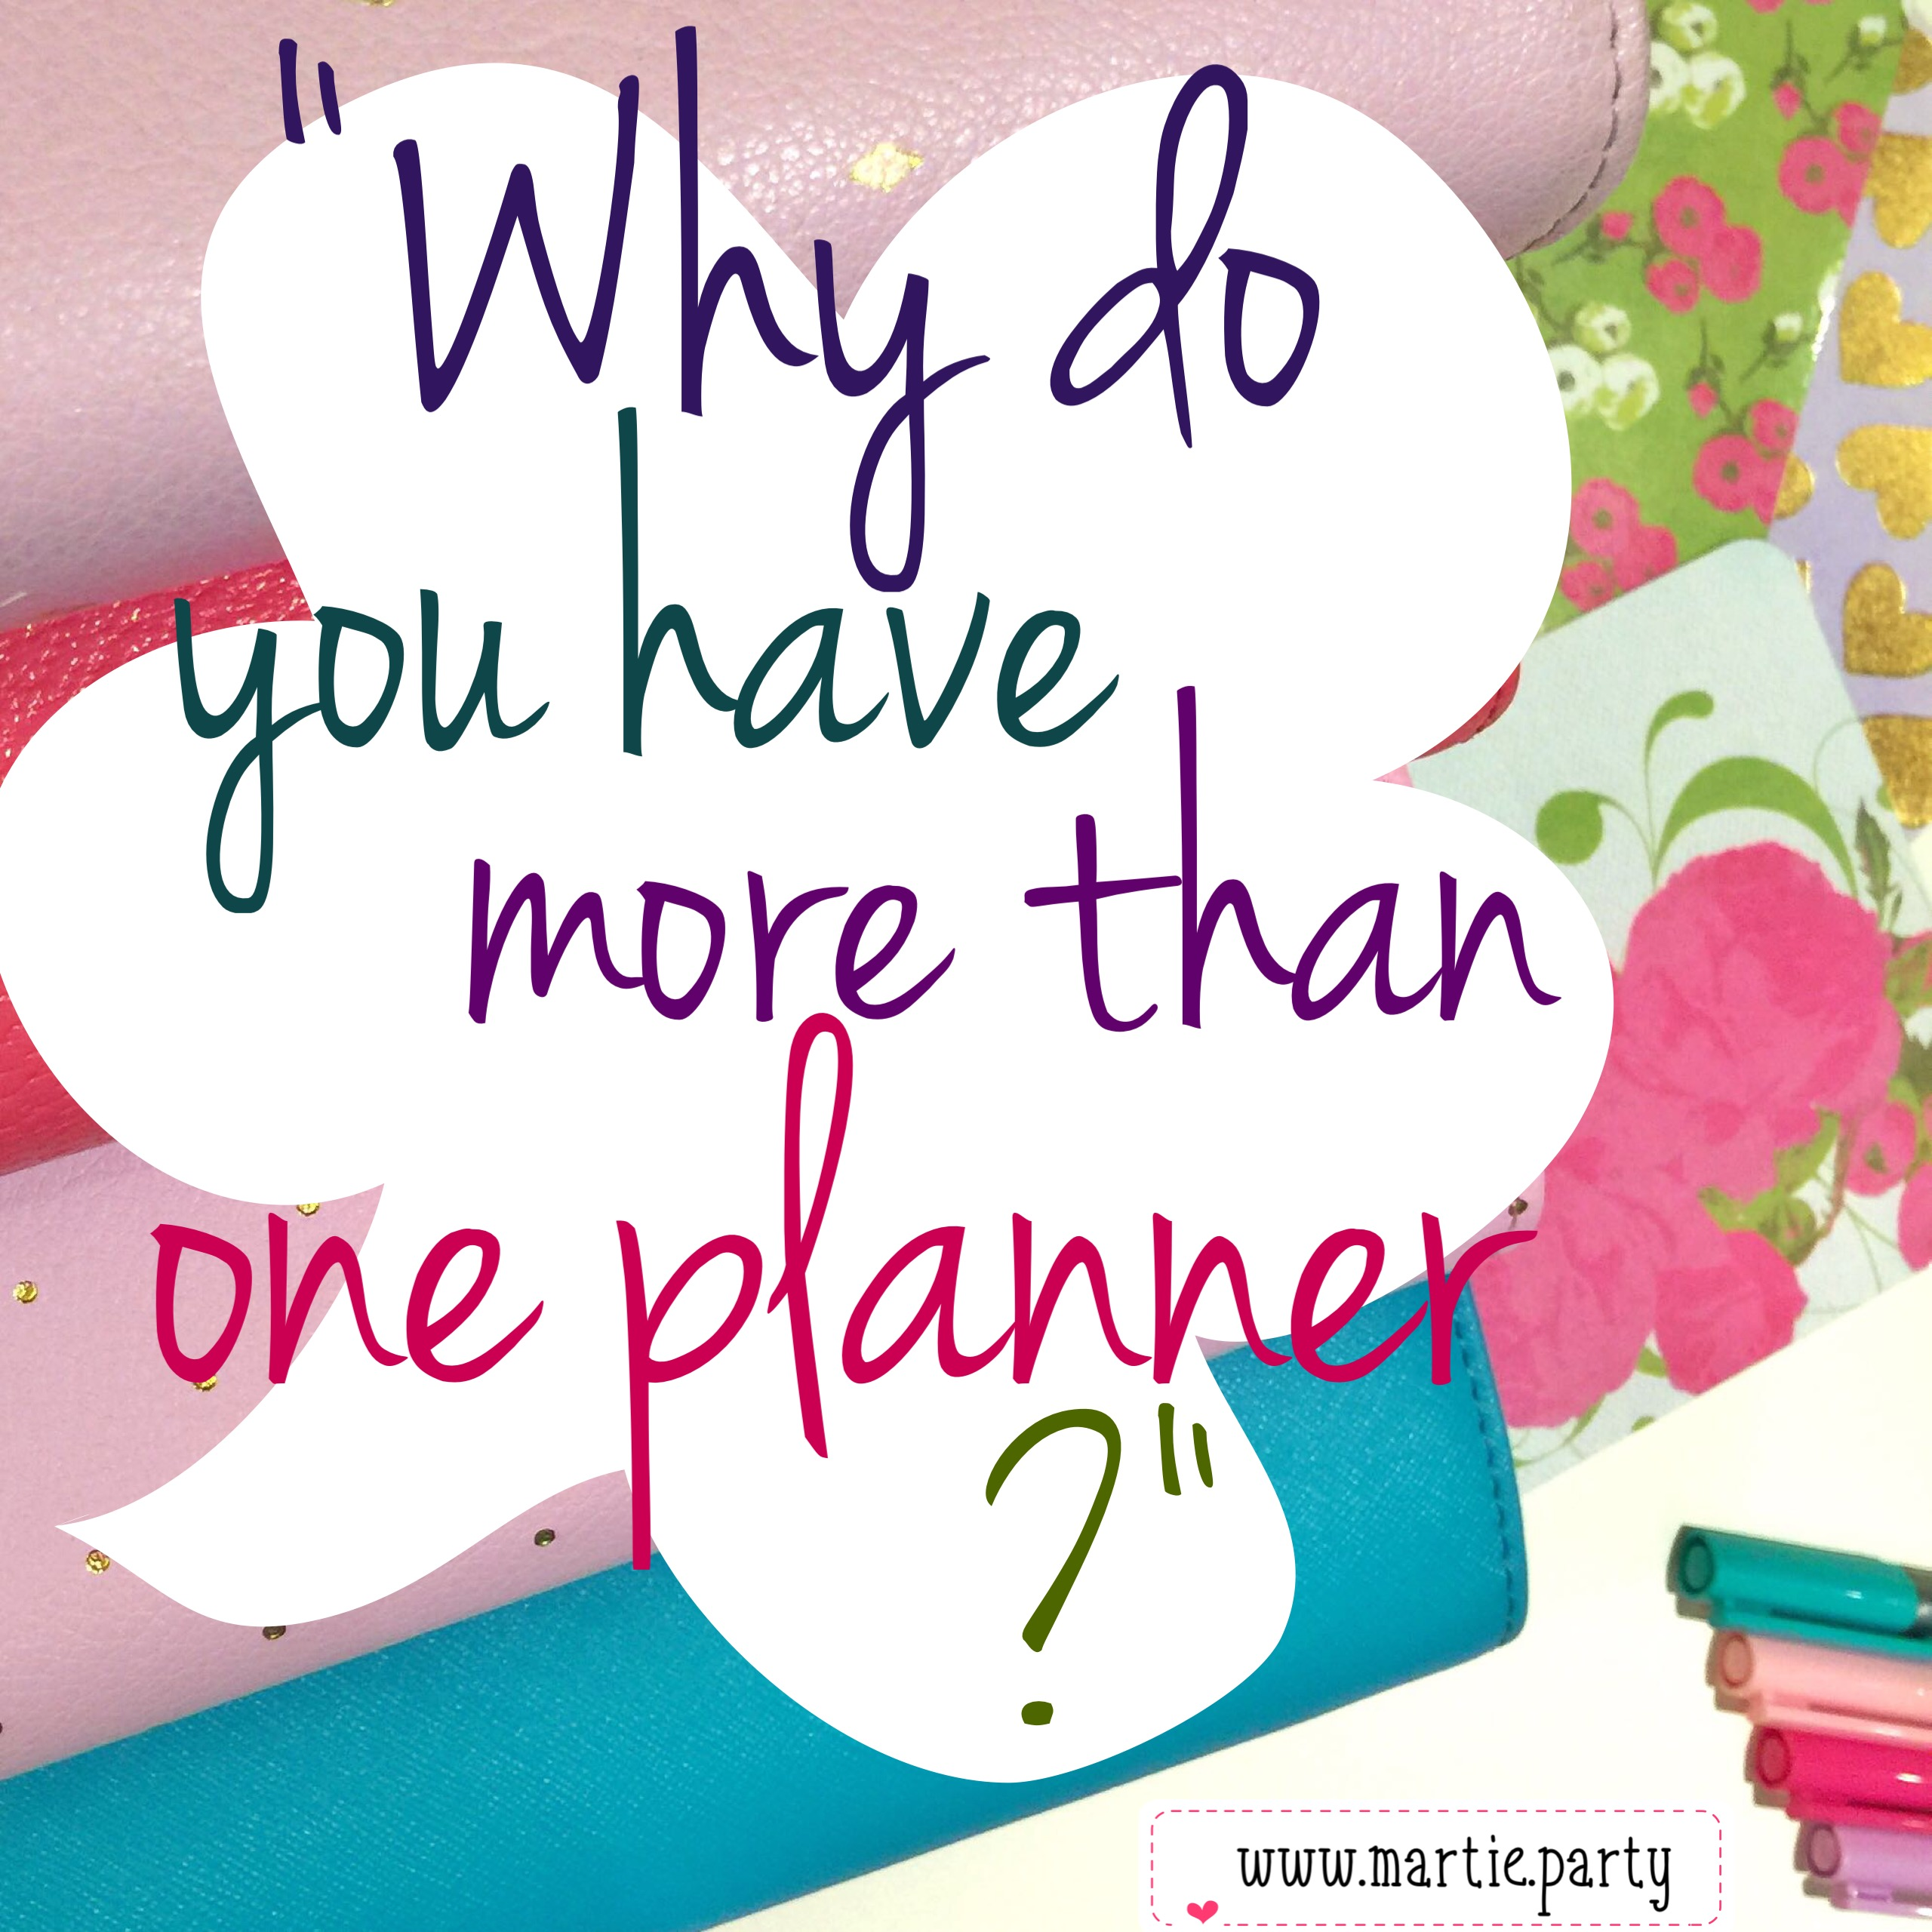 """Why do you have more than one planner?"" at www.martie.party"